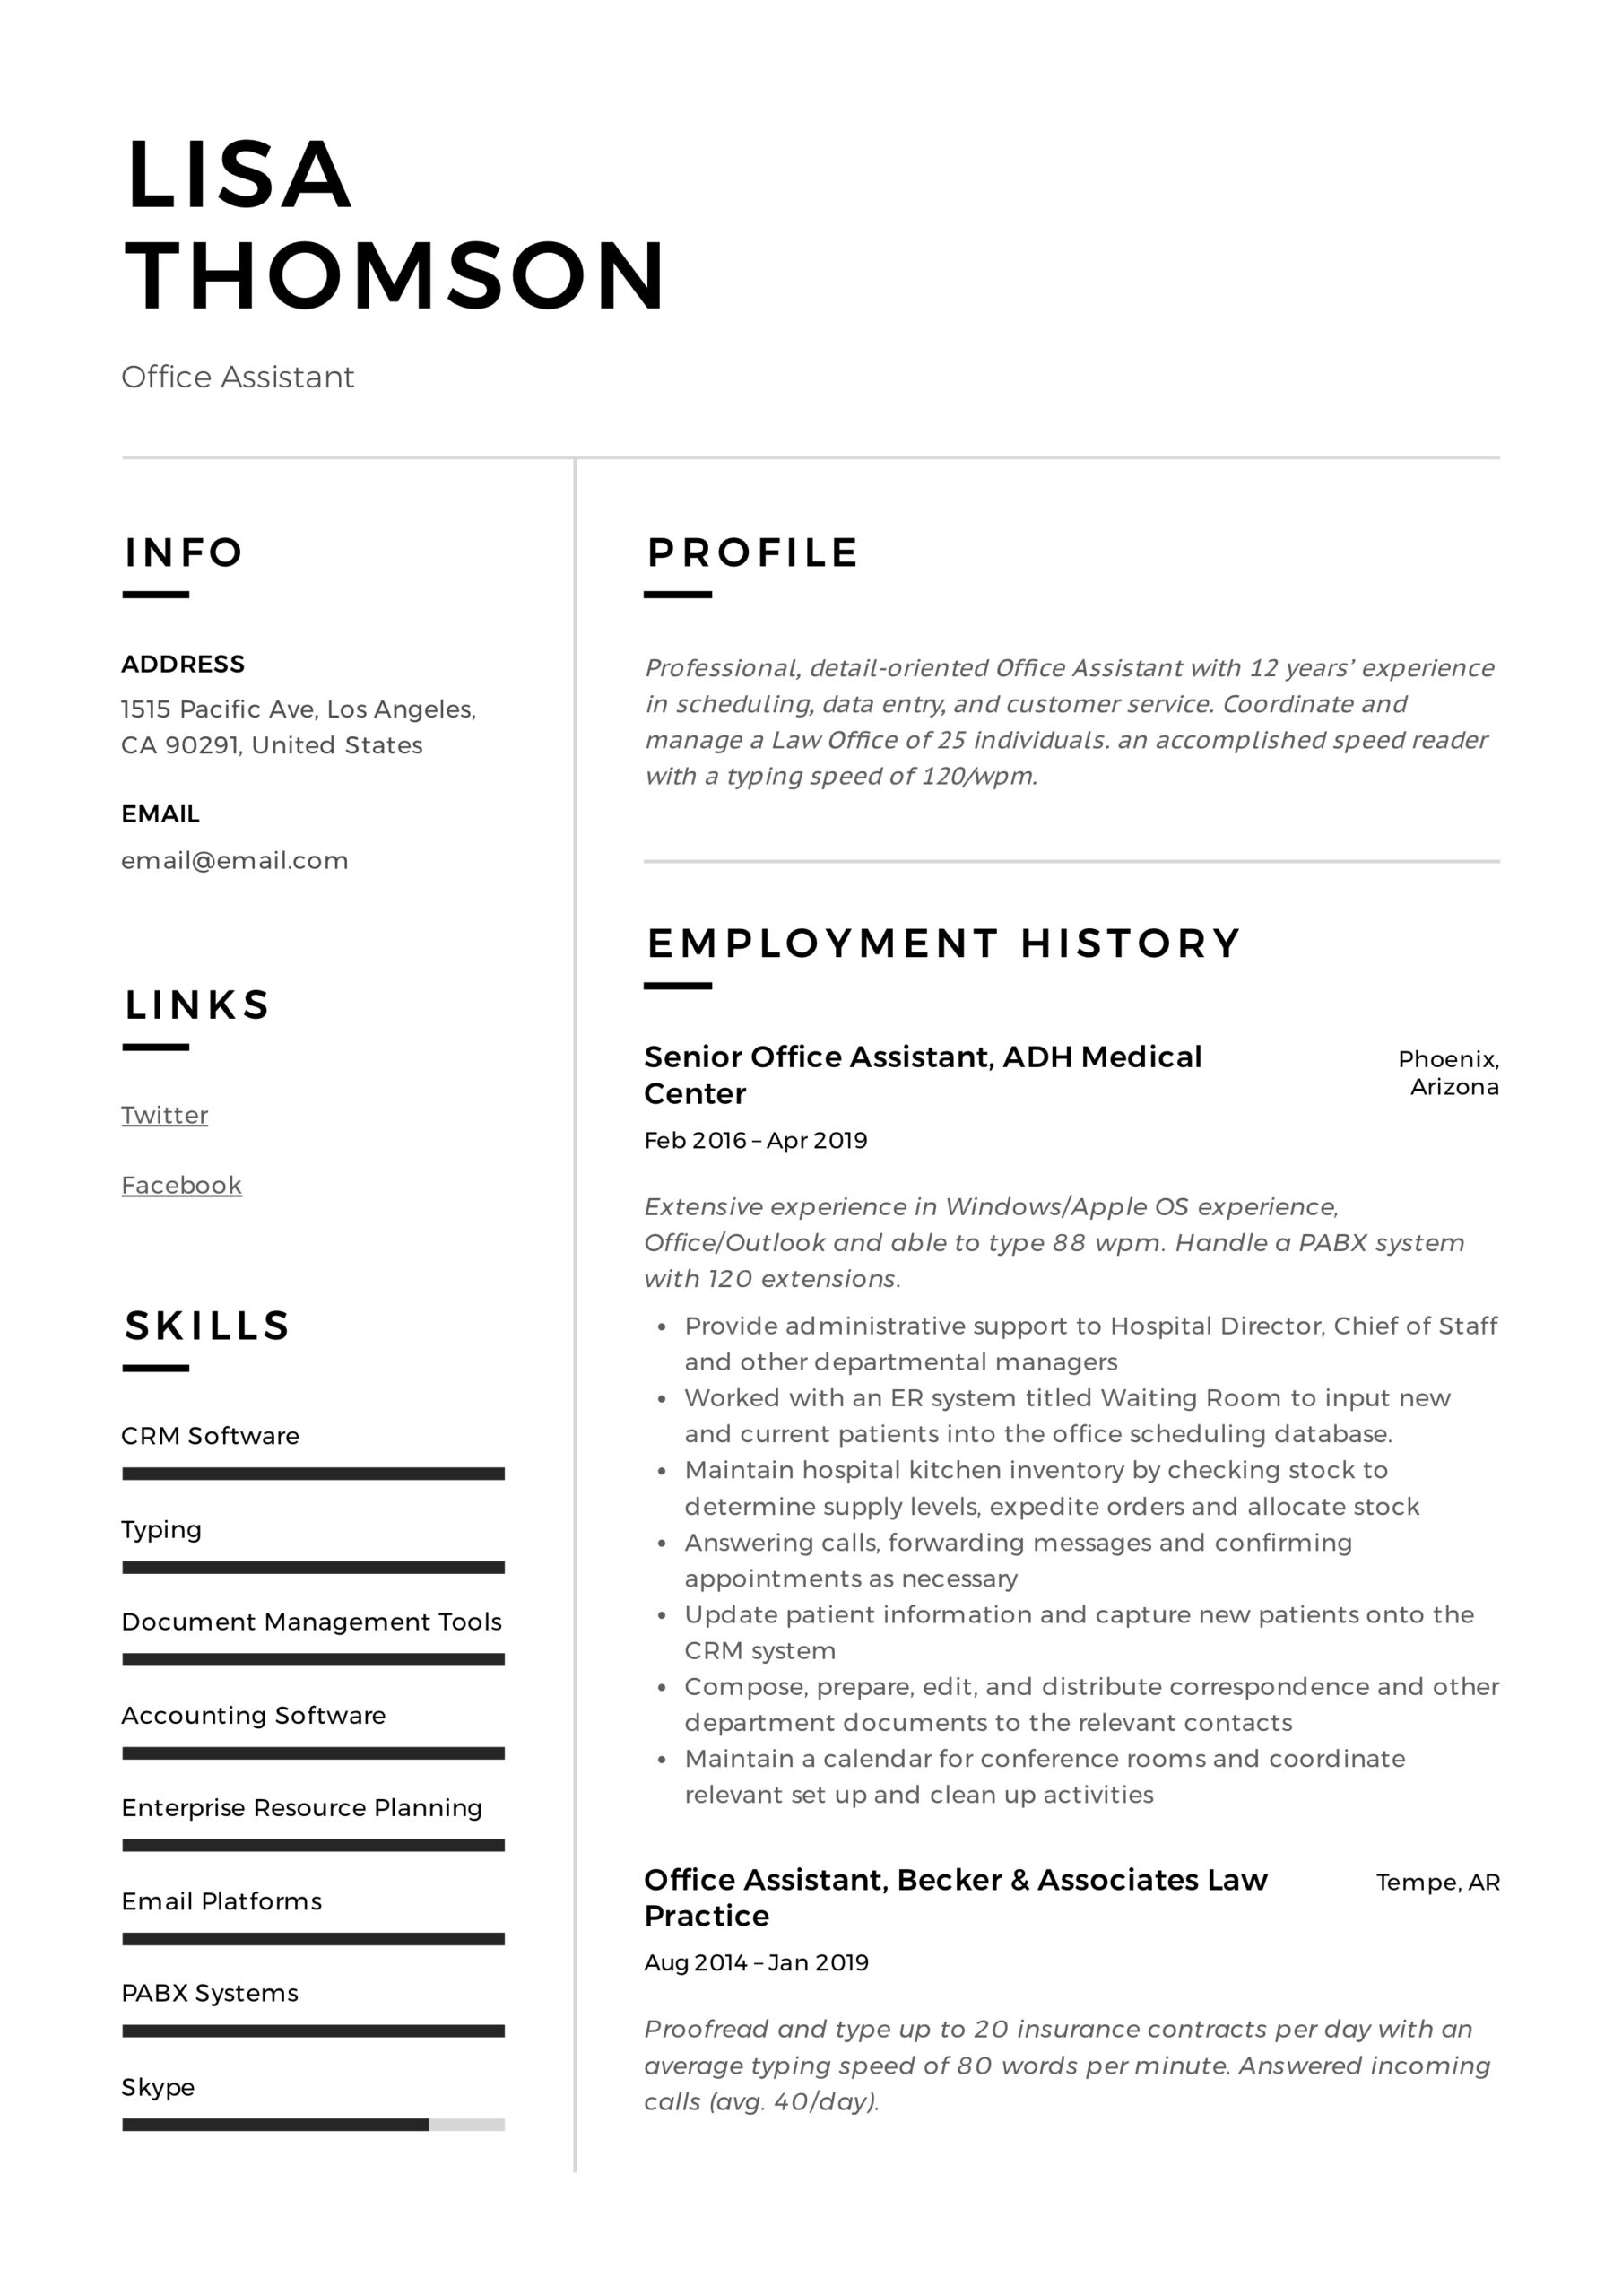 office assistant resume writing guide templates examples lisa thomson sample multiple Resume Office Assistant Resume Examples